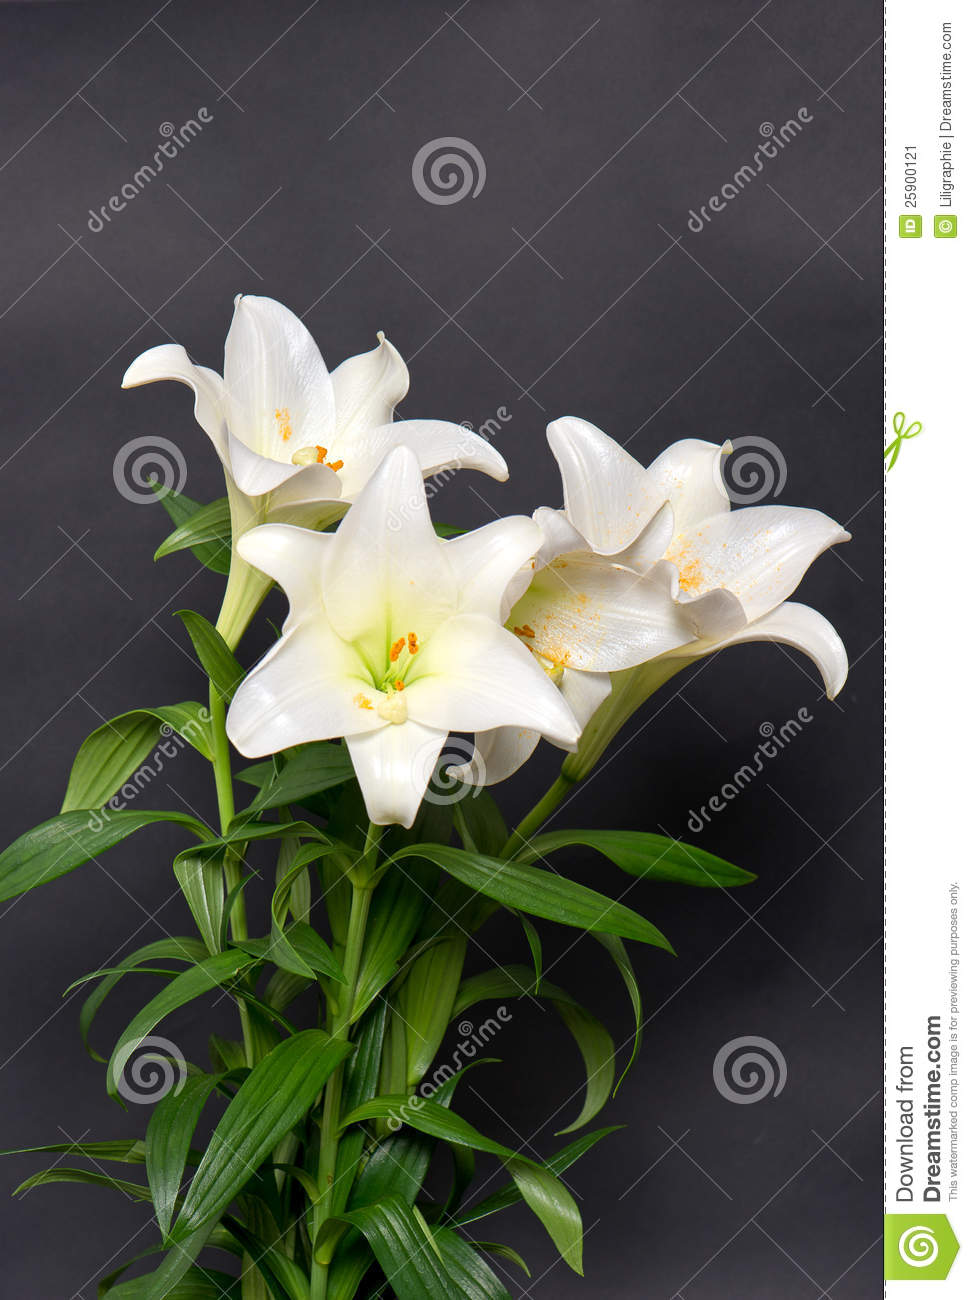 White Lily Flowers Bouquet On Black Stock Image Image Of Lilly